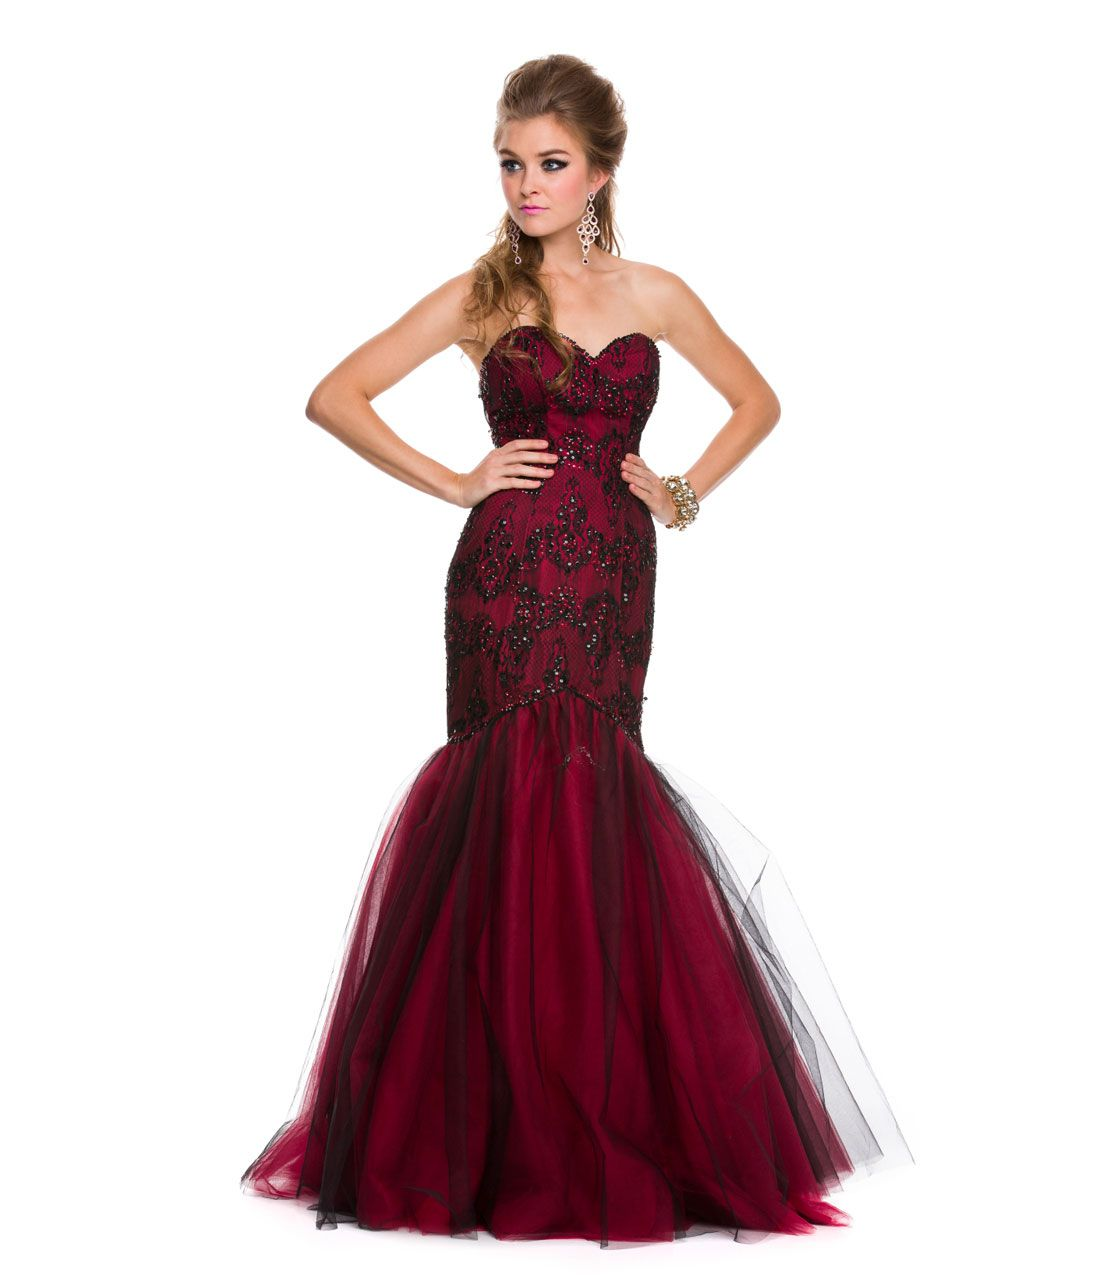 Fein Hollywood Prom Kleid Fotos - Brautkleider Ideen - cashingy.info